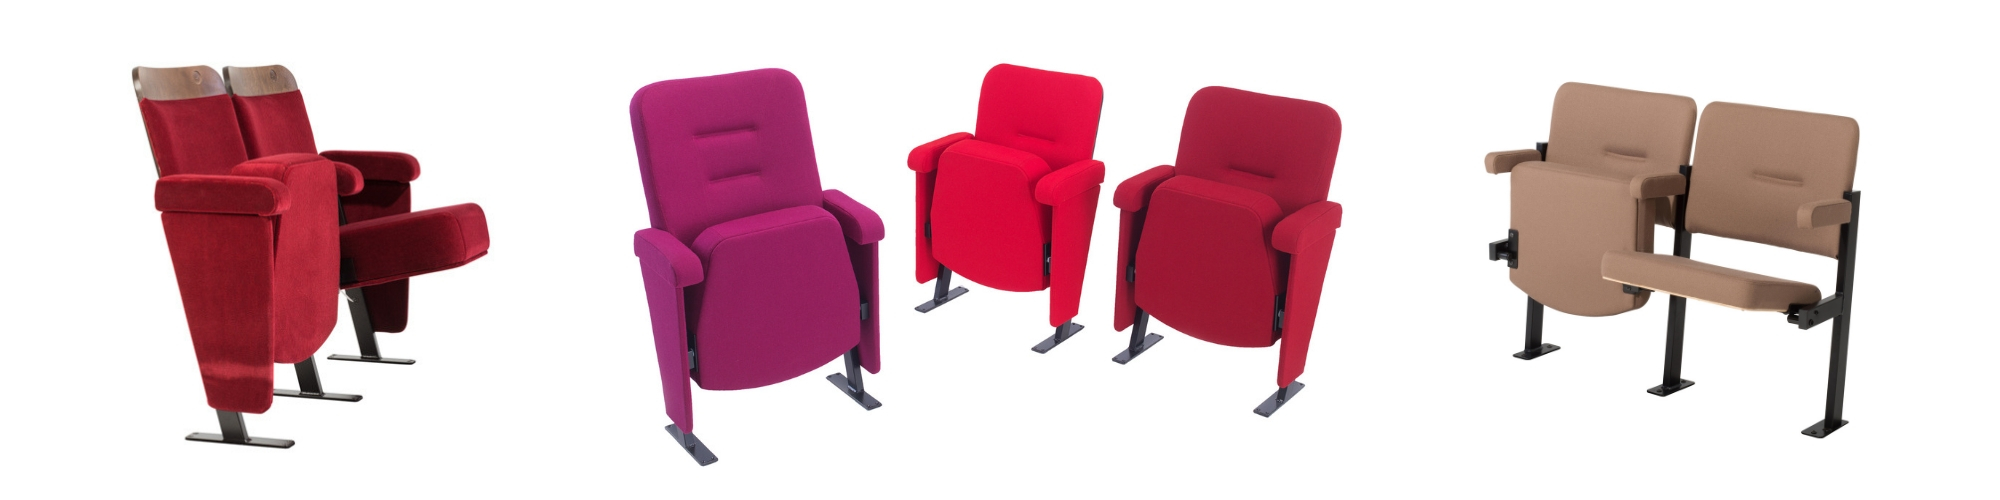 Theatre seating manufactured by Evertaut which can be bought through leasing